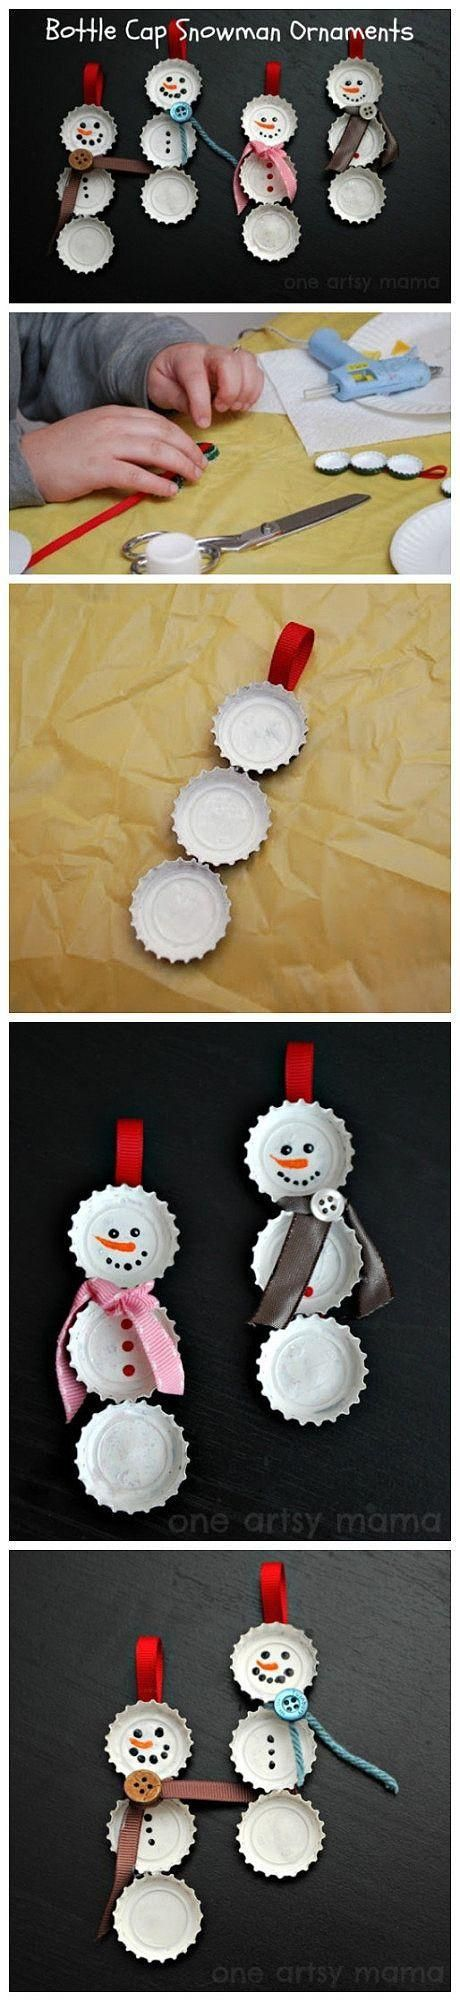 Use of waste produced snow cap, let this Christmas be filled with little creative ~ ~ ~